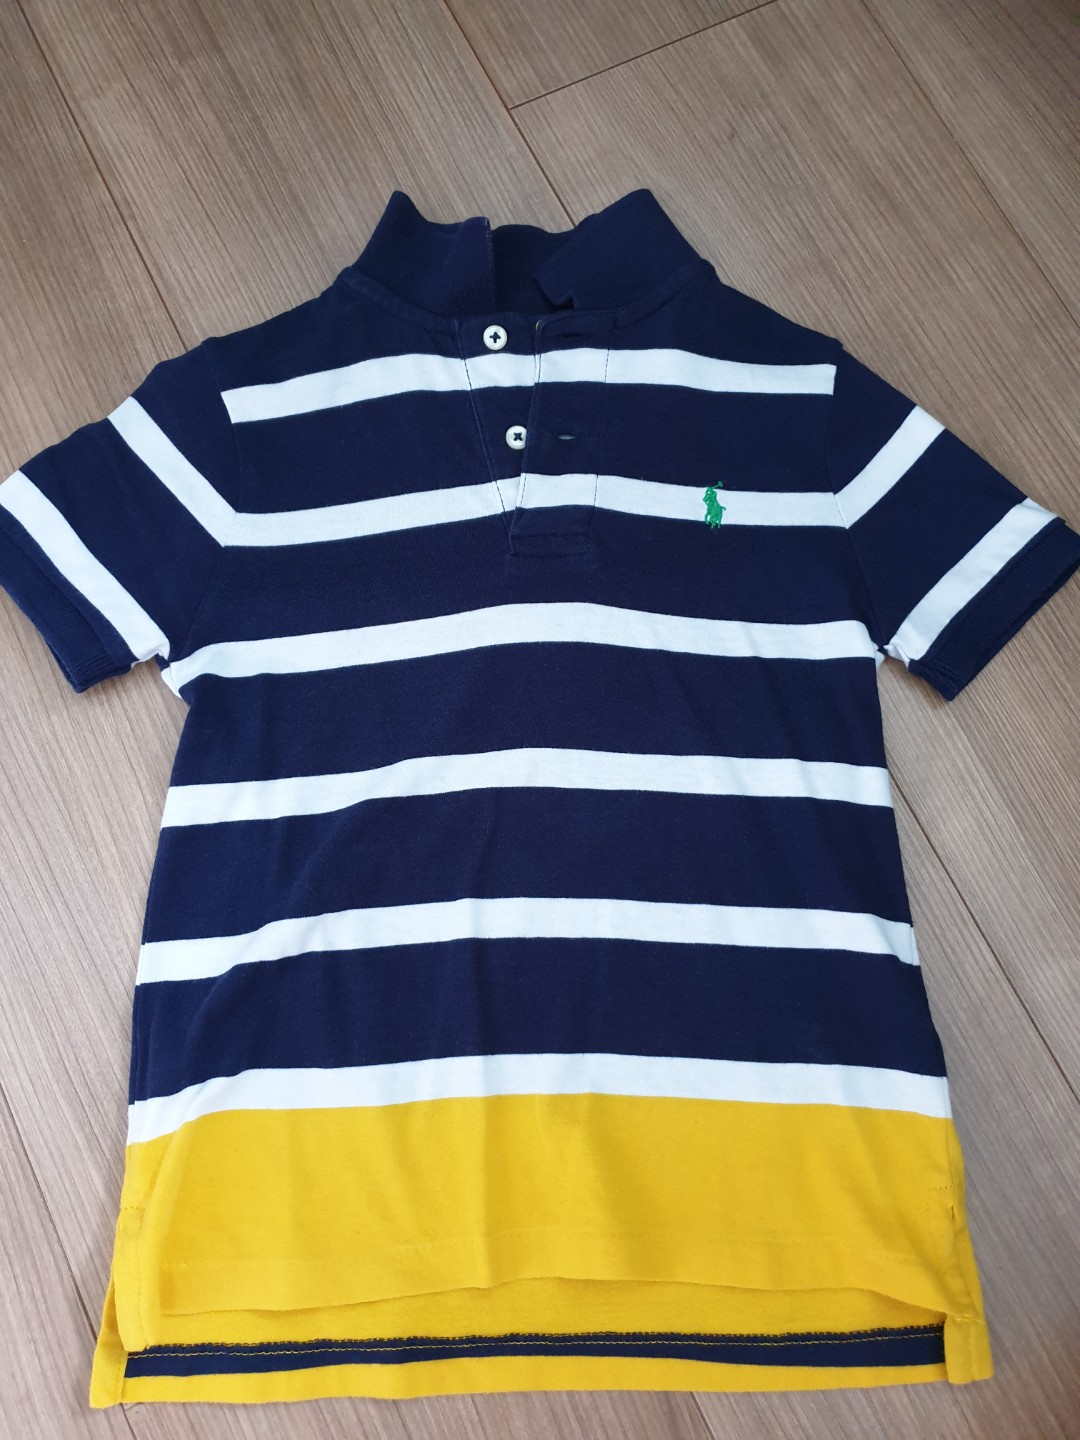 1c4415b81942d Authentic Polo Ralph Lauren kids Polo (pre-loved)